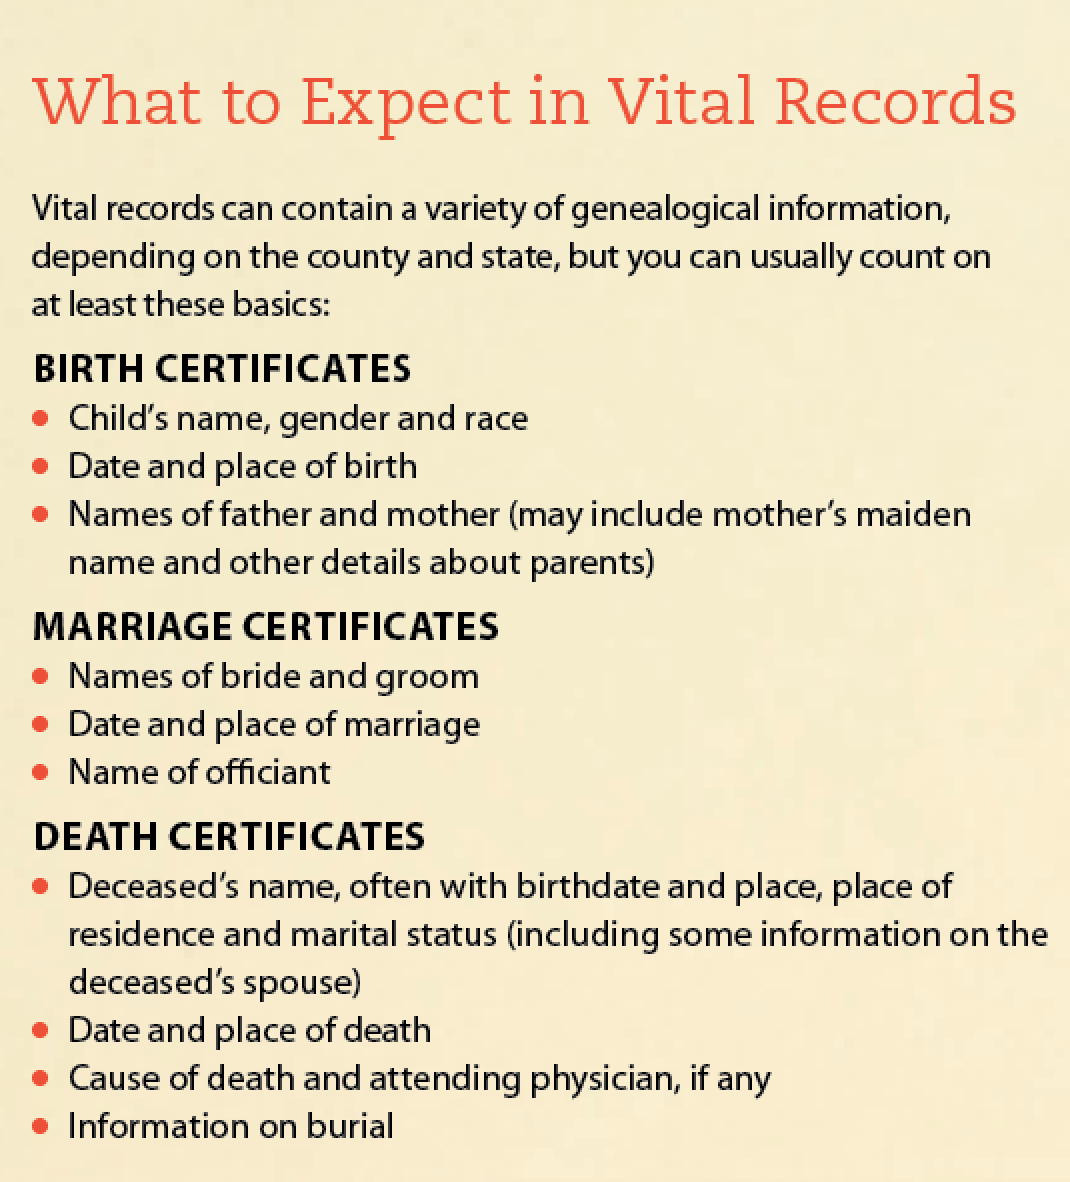 The details in vital records vary by time and location, but you can usually count on a set of facts in birth, marriage and death records.